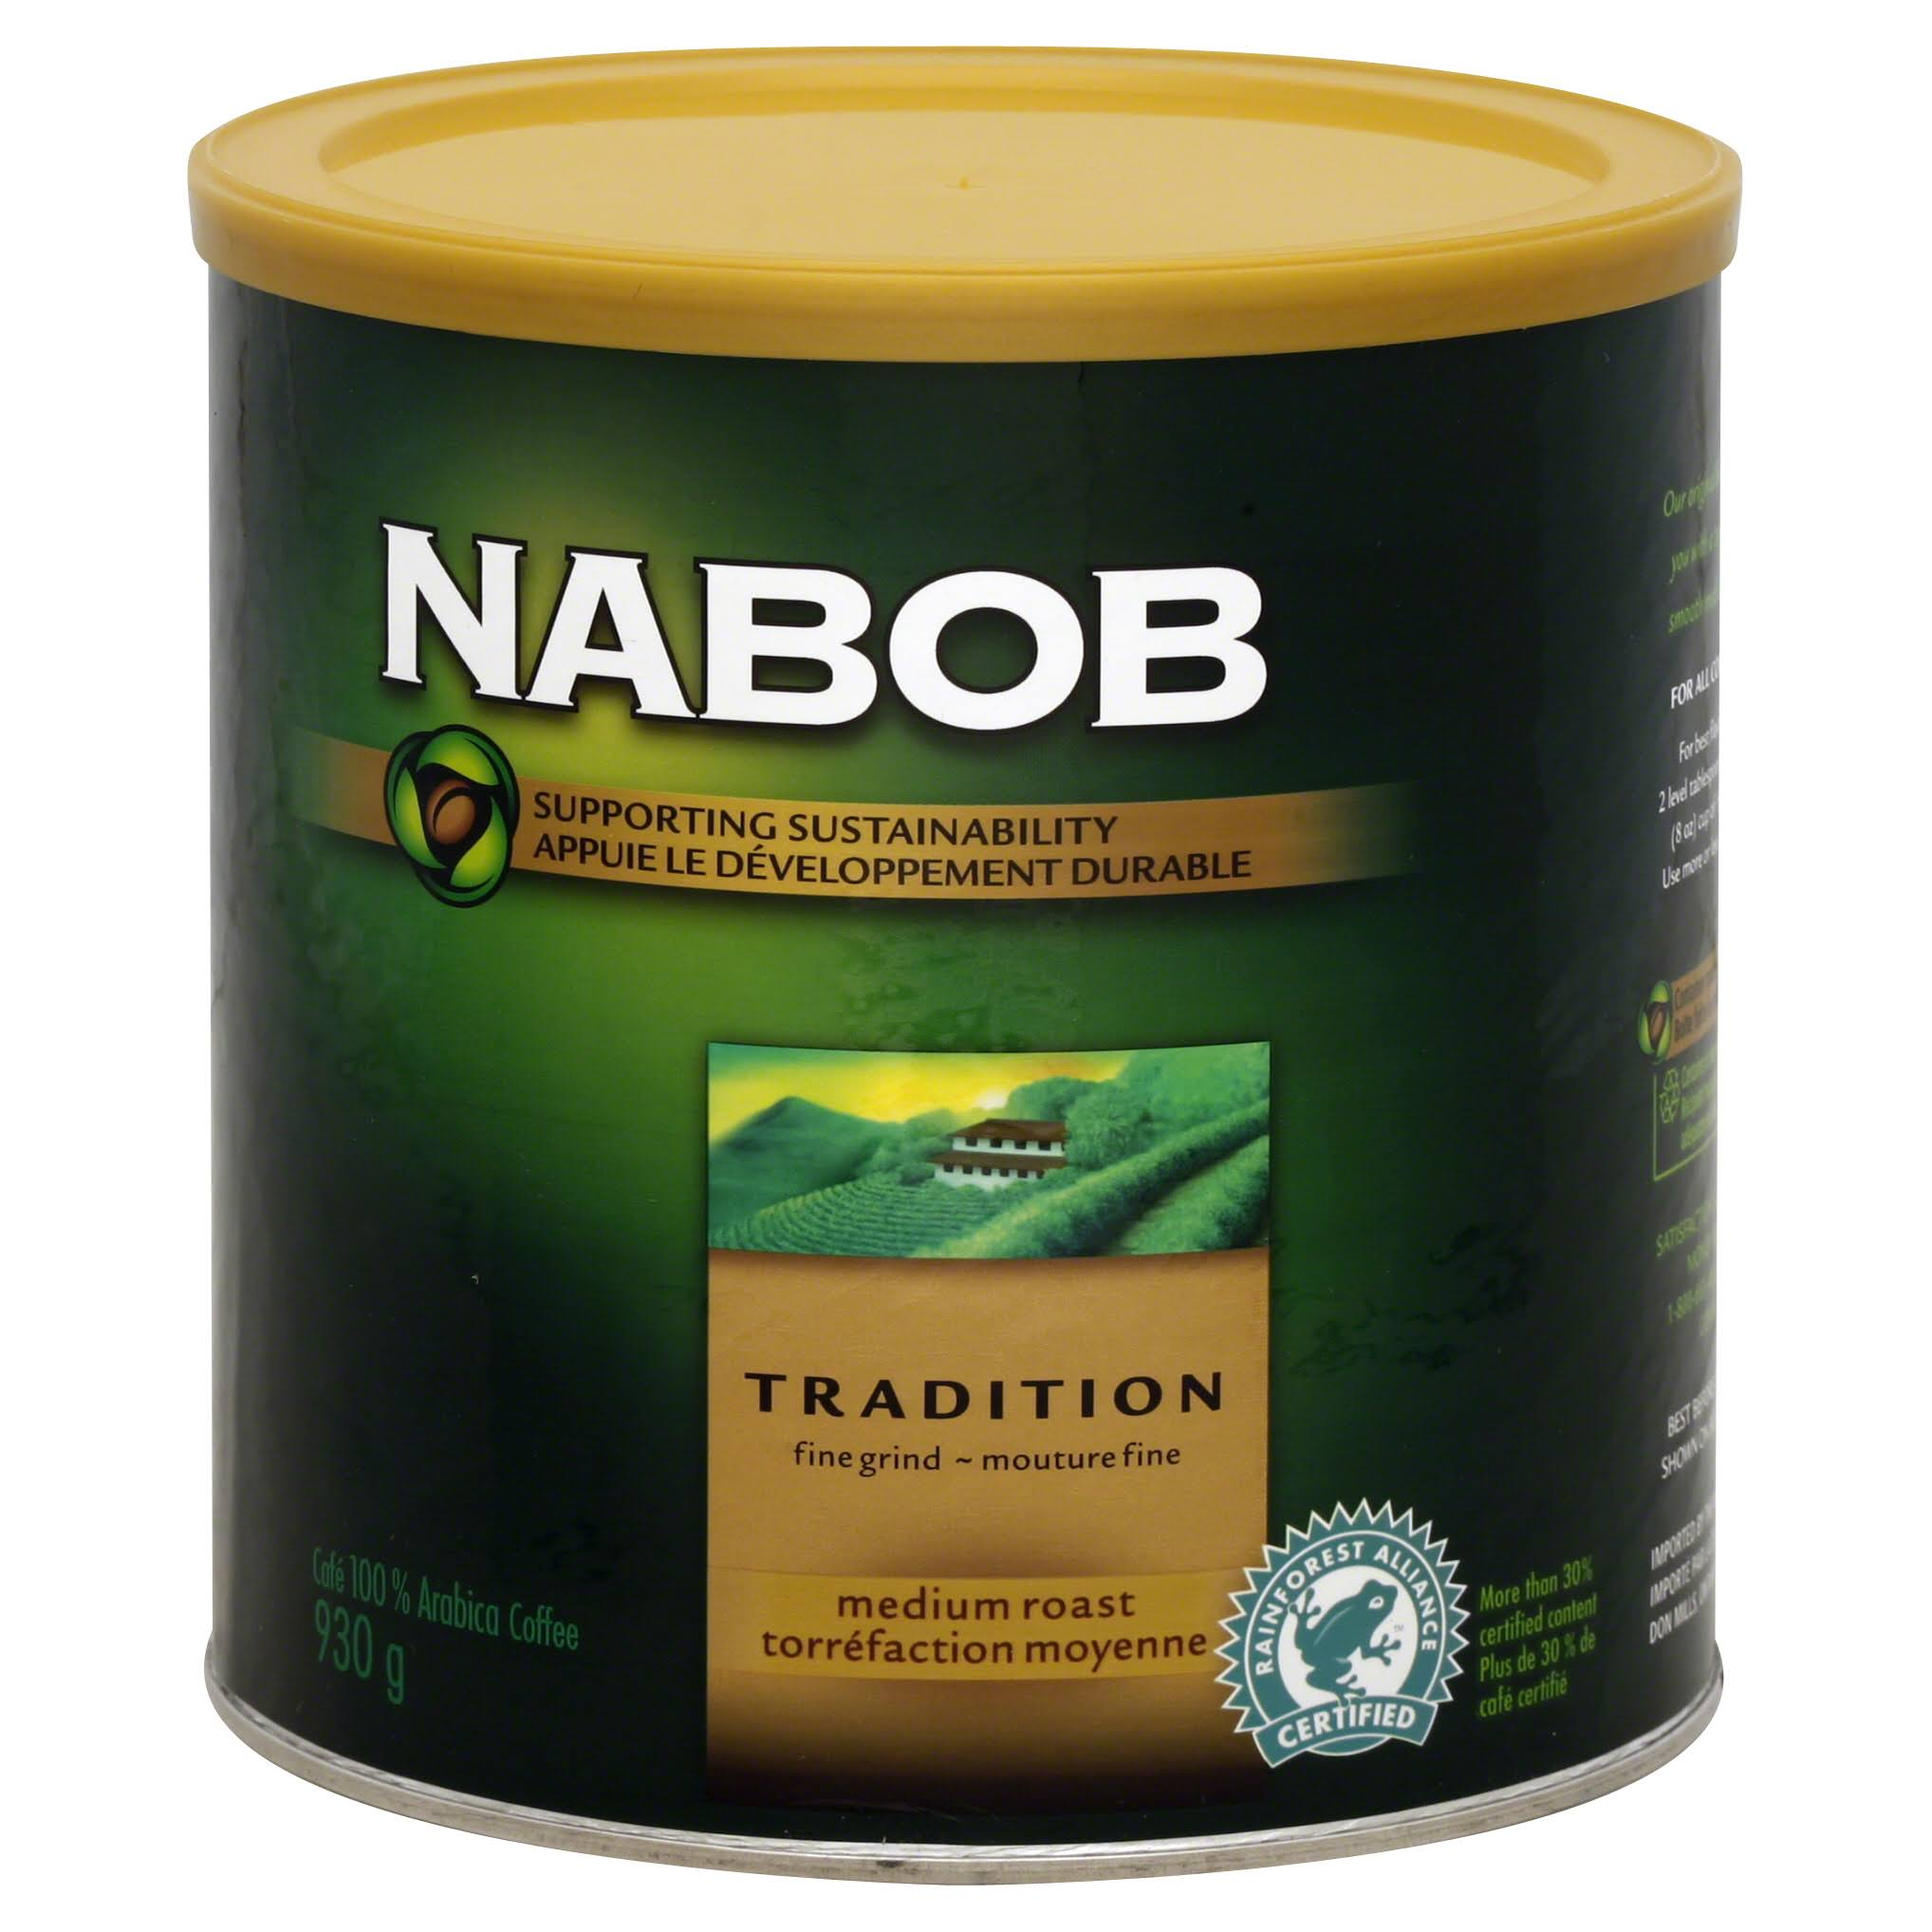 Nabob Traditional Fine Grind Coffee